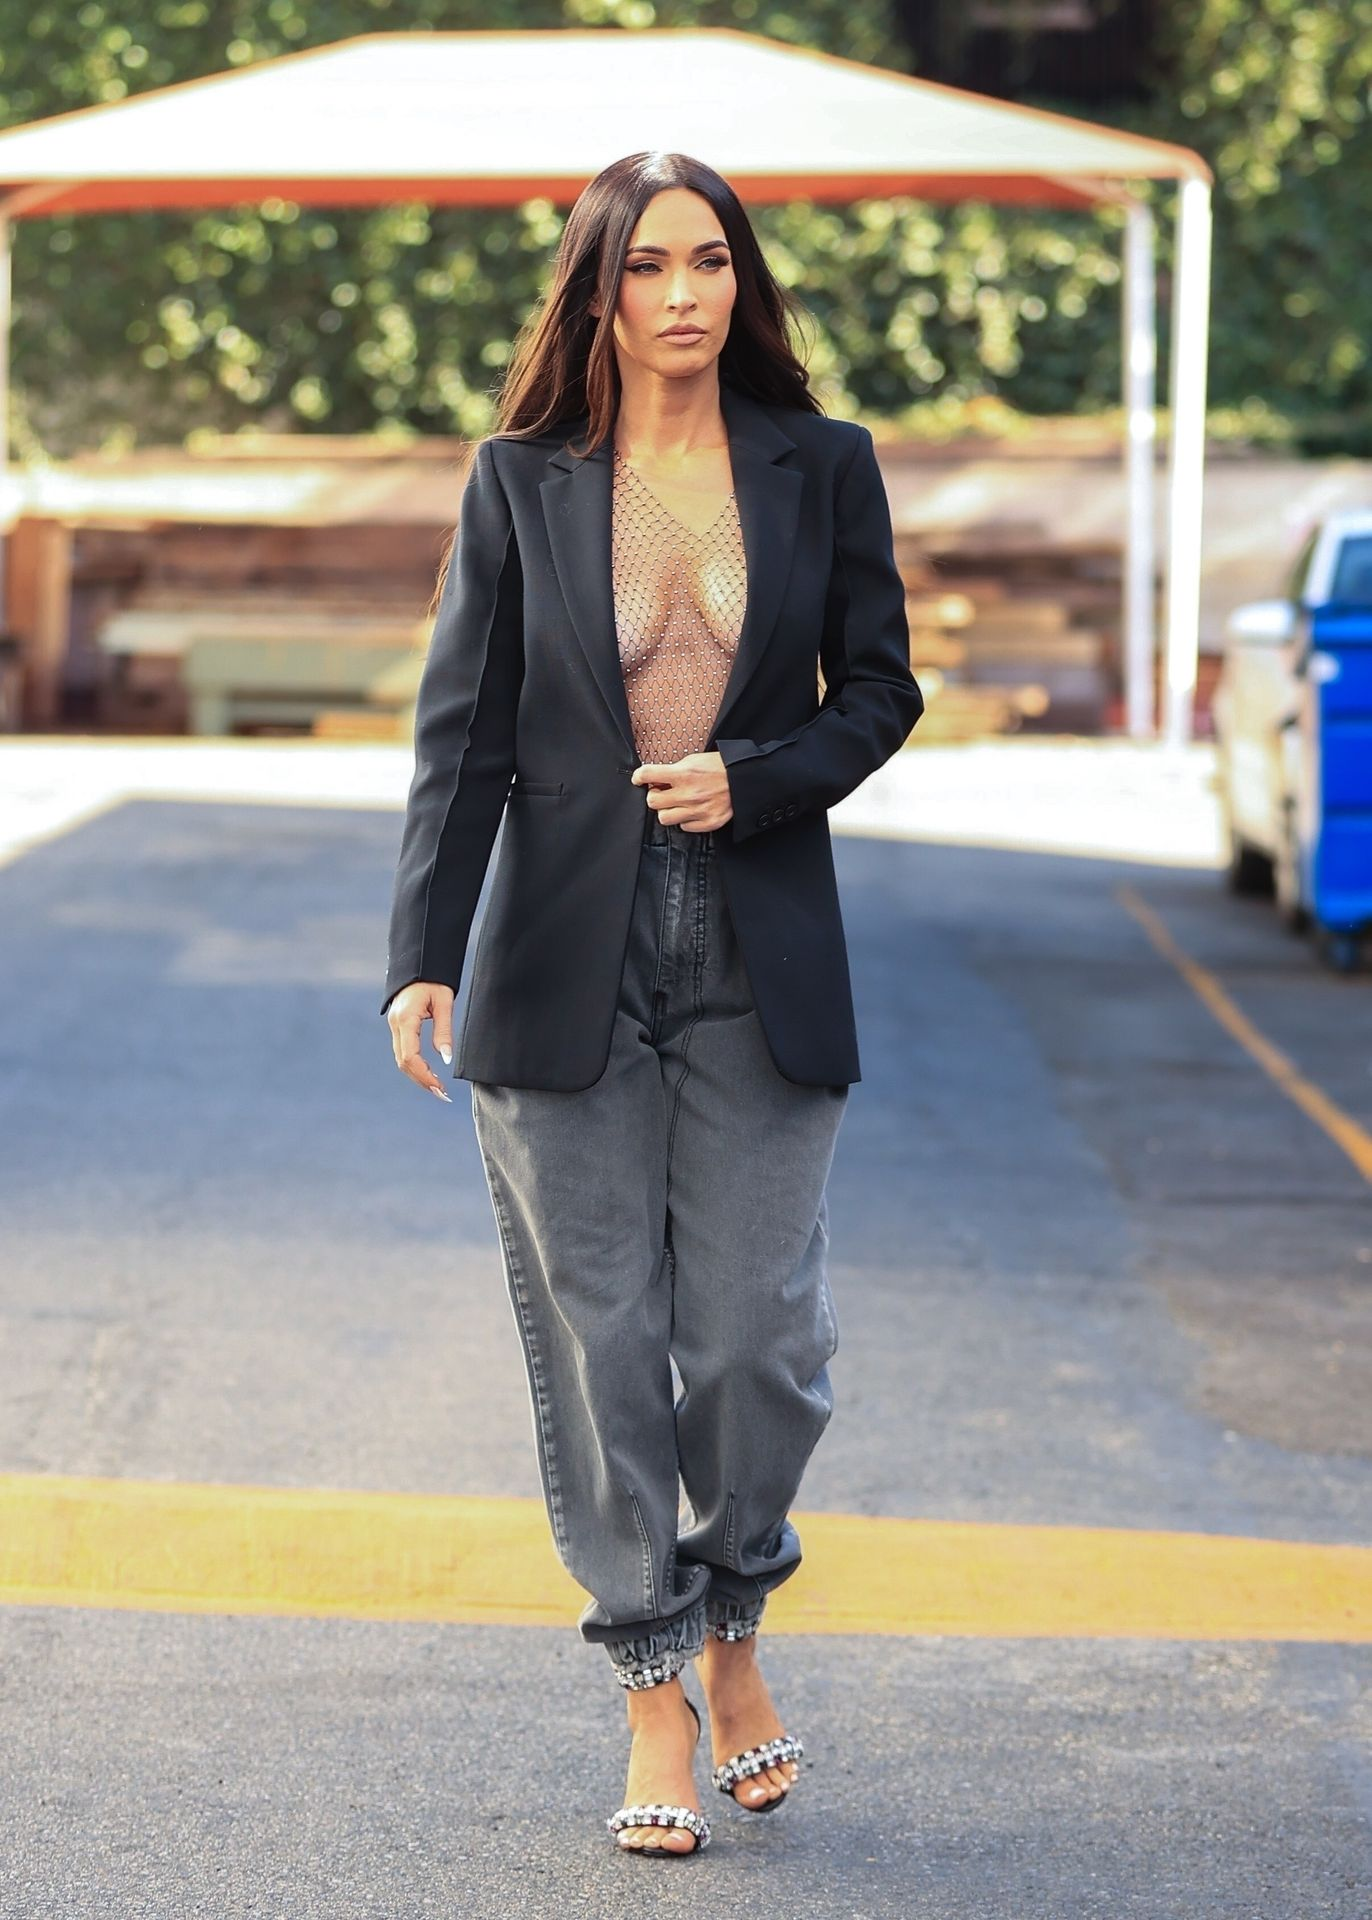 Megan Fox Leaves Little to Imagination While Leaving a Photoshoot in LA (19 Photos)